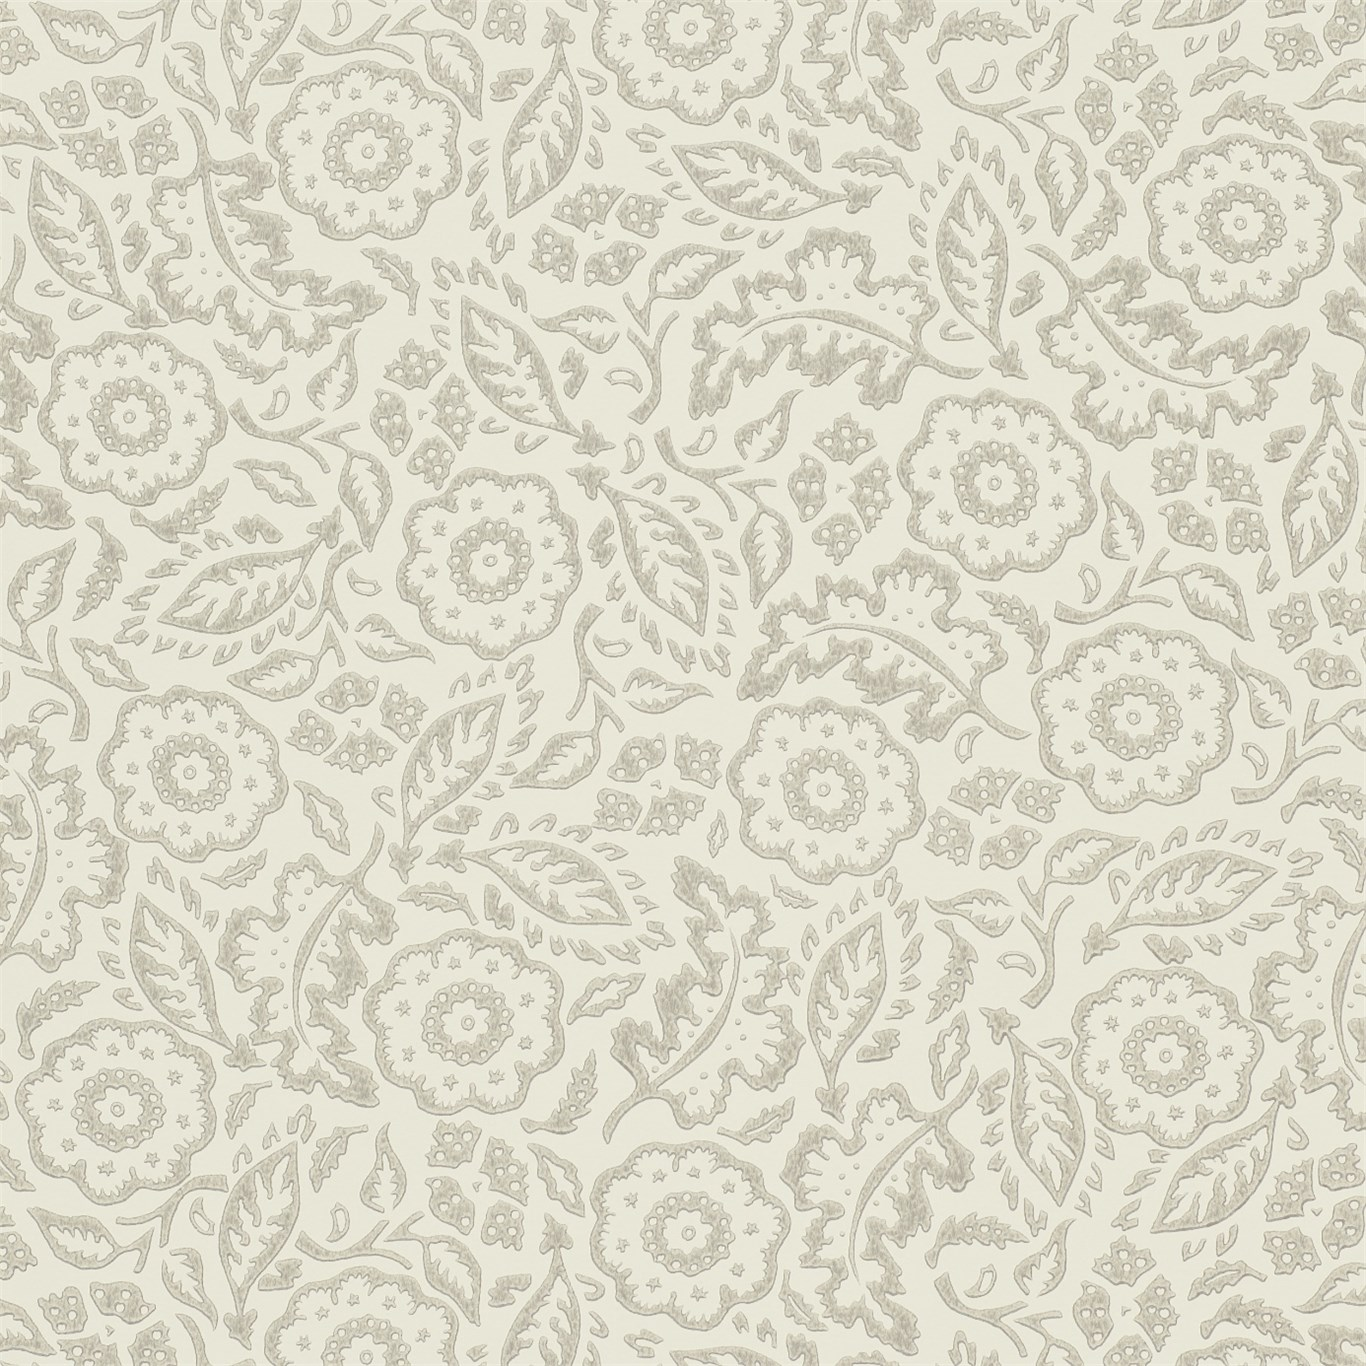 EB Tapet Floral Damask Silver